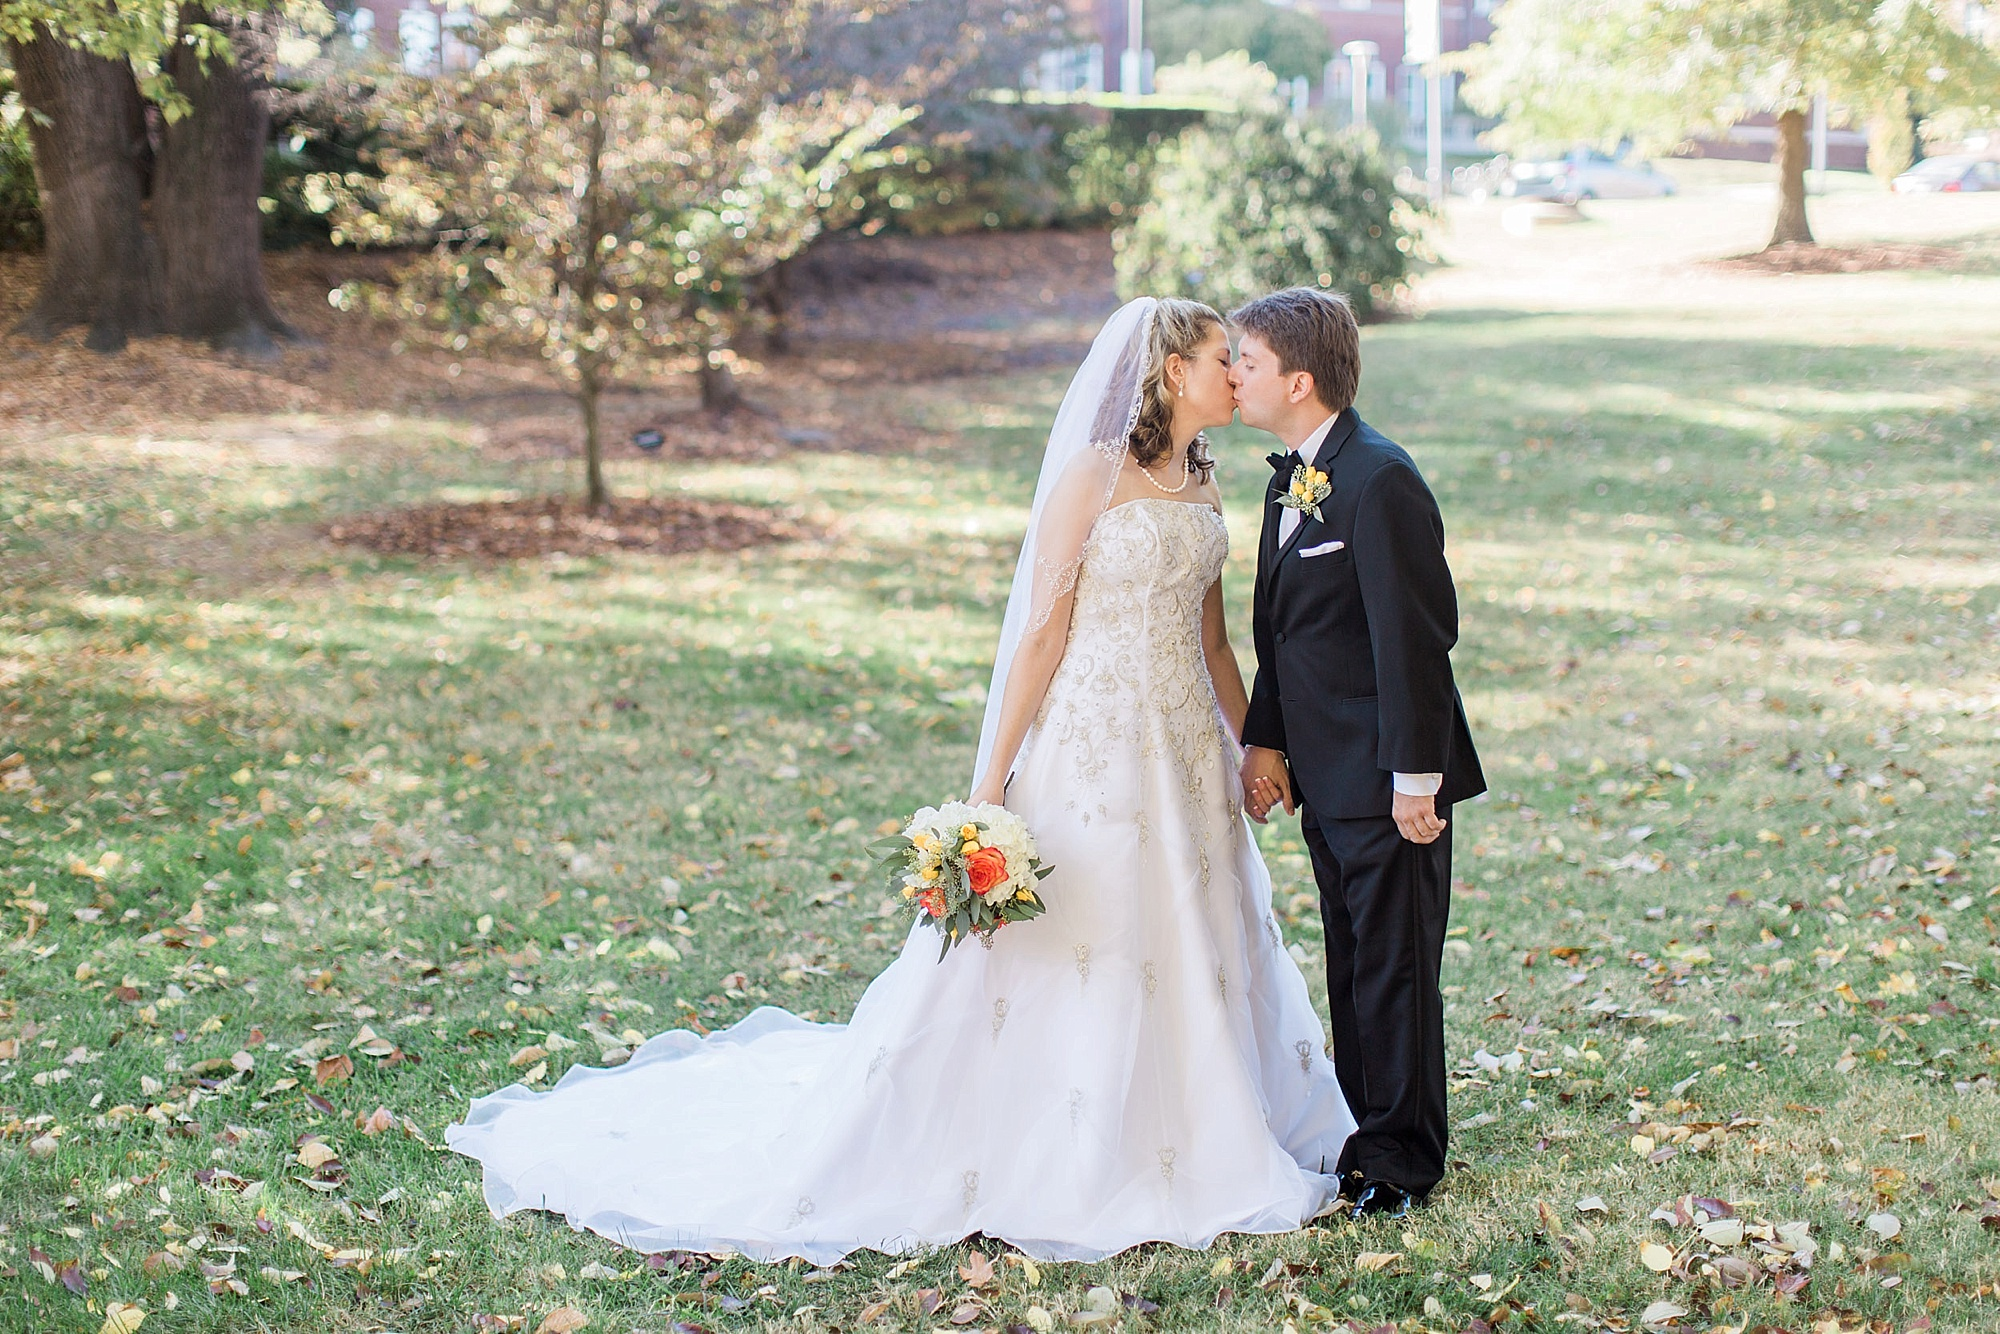 Wedding Photographer in Greensboro